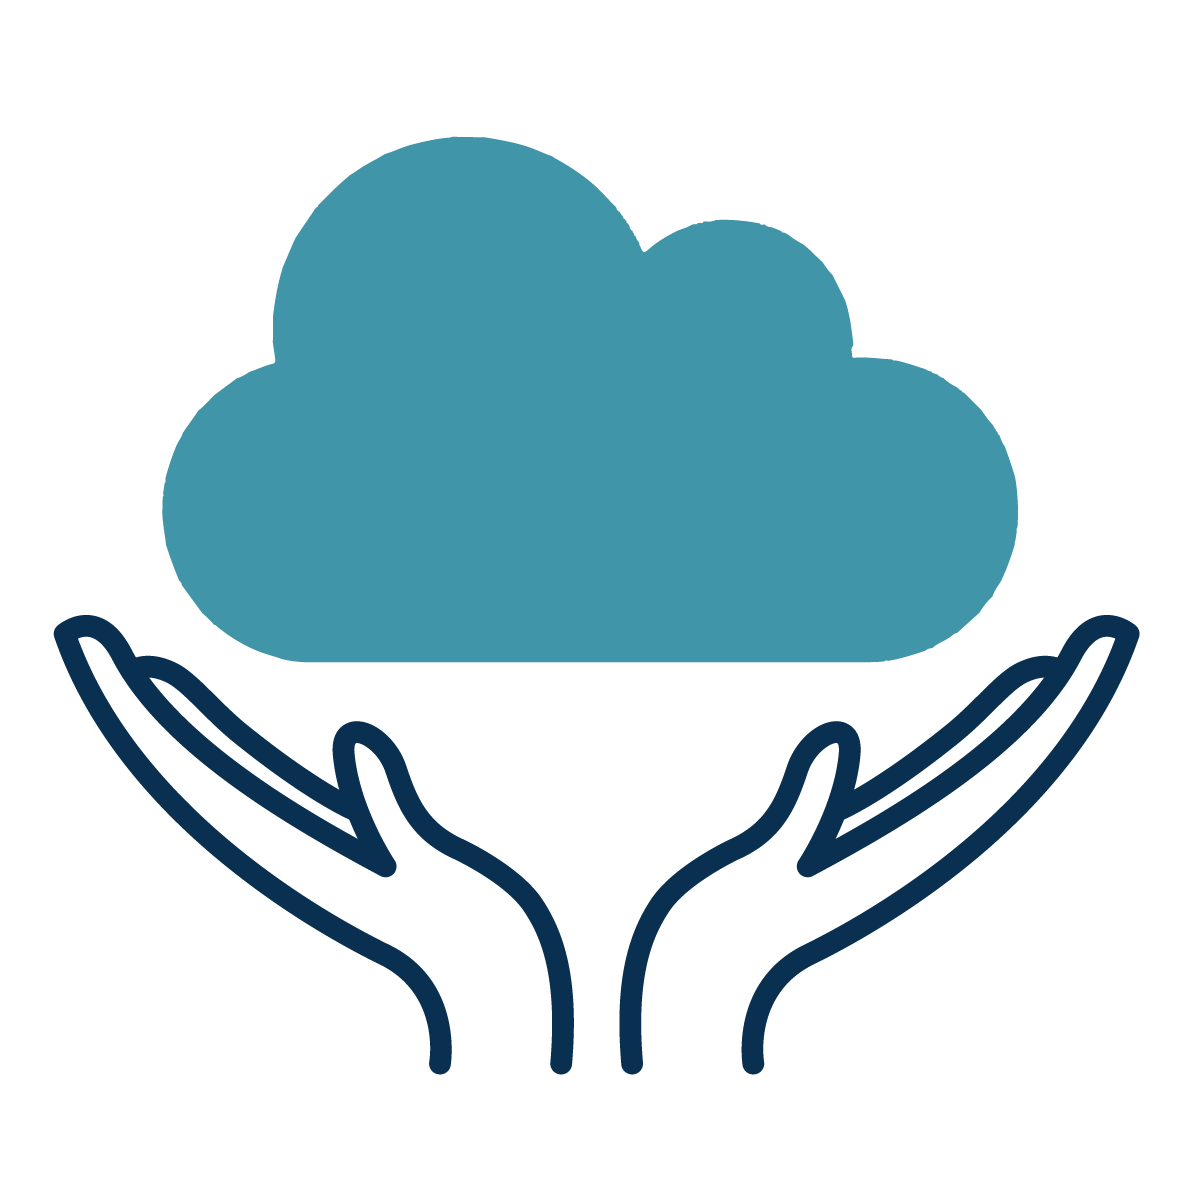 A cloud hovers above two hands which have their palms upwards, representing a personal cloud.